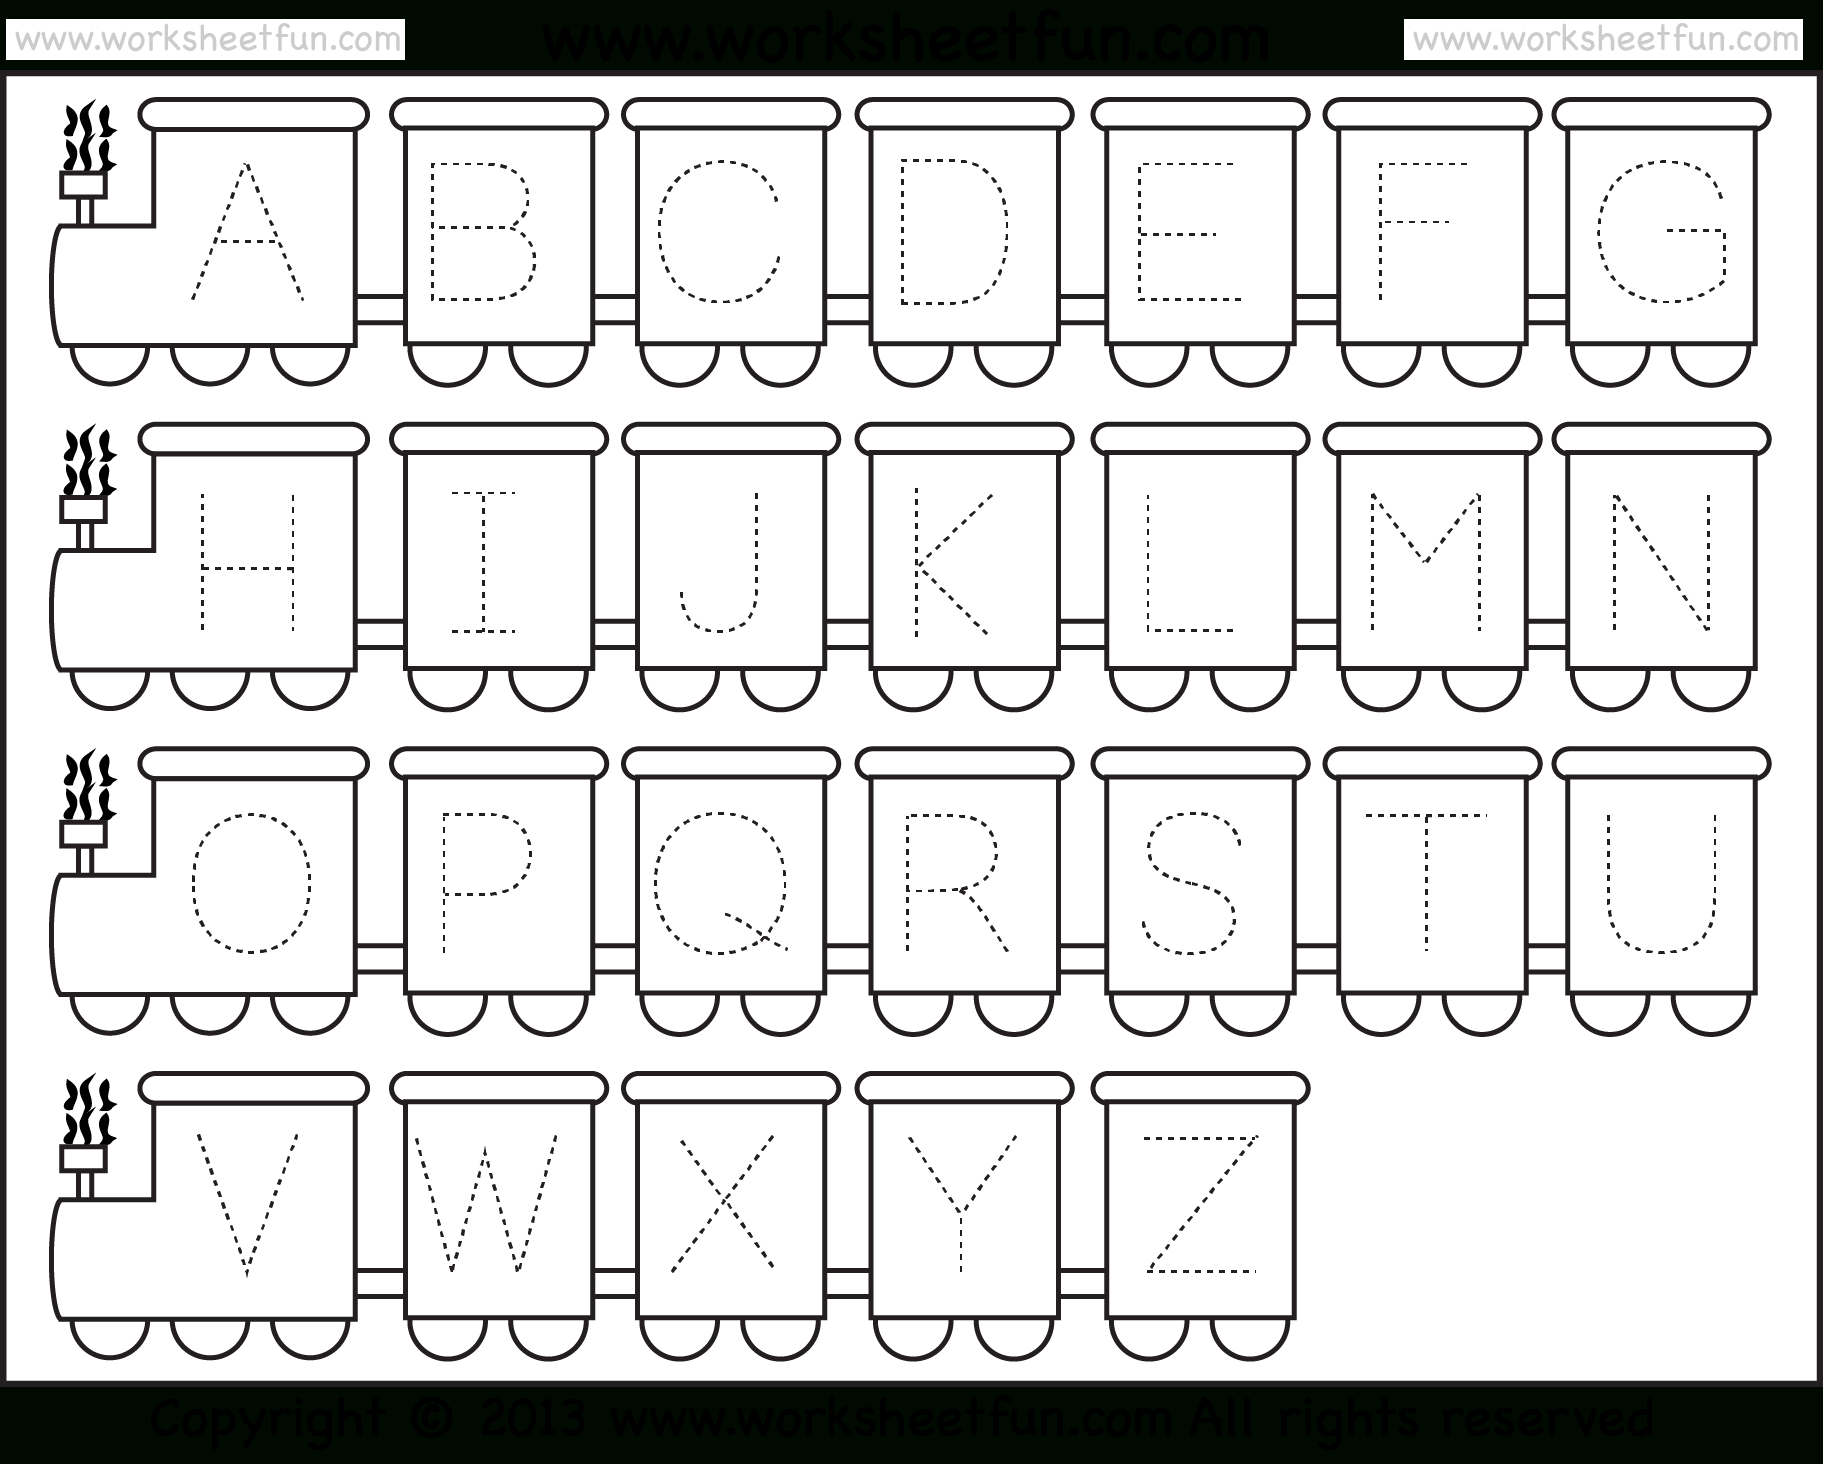 Letter Tracing Worksheet – Train Theme / Free Printable Worksheets - Free Printable Tracing Letters And Numbers Worksheets